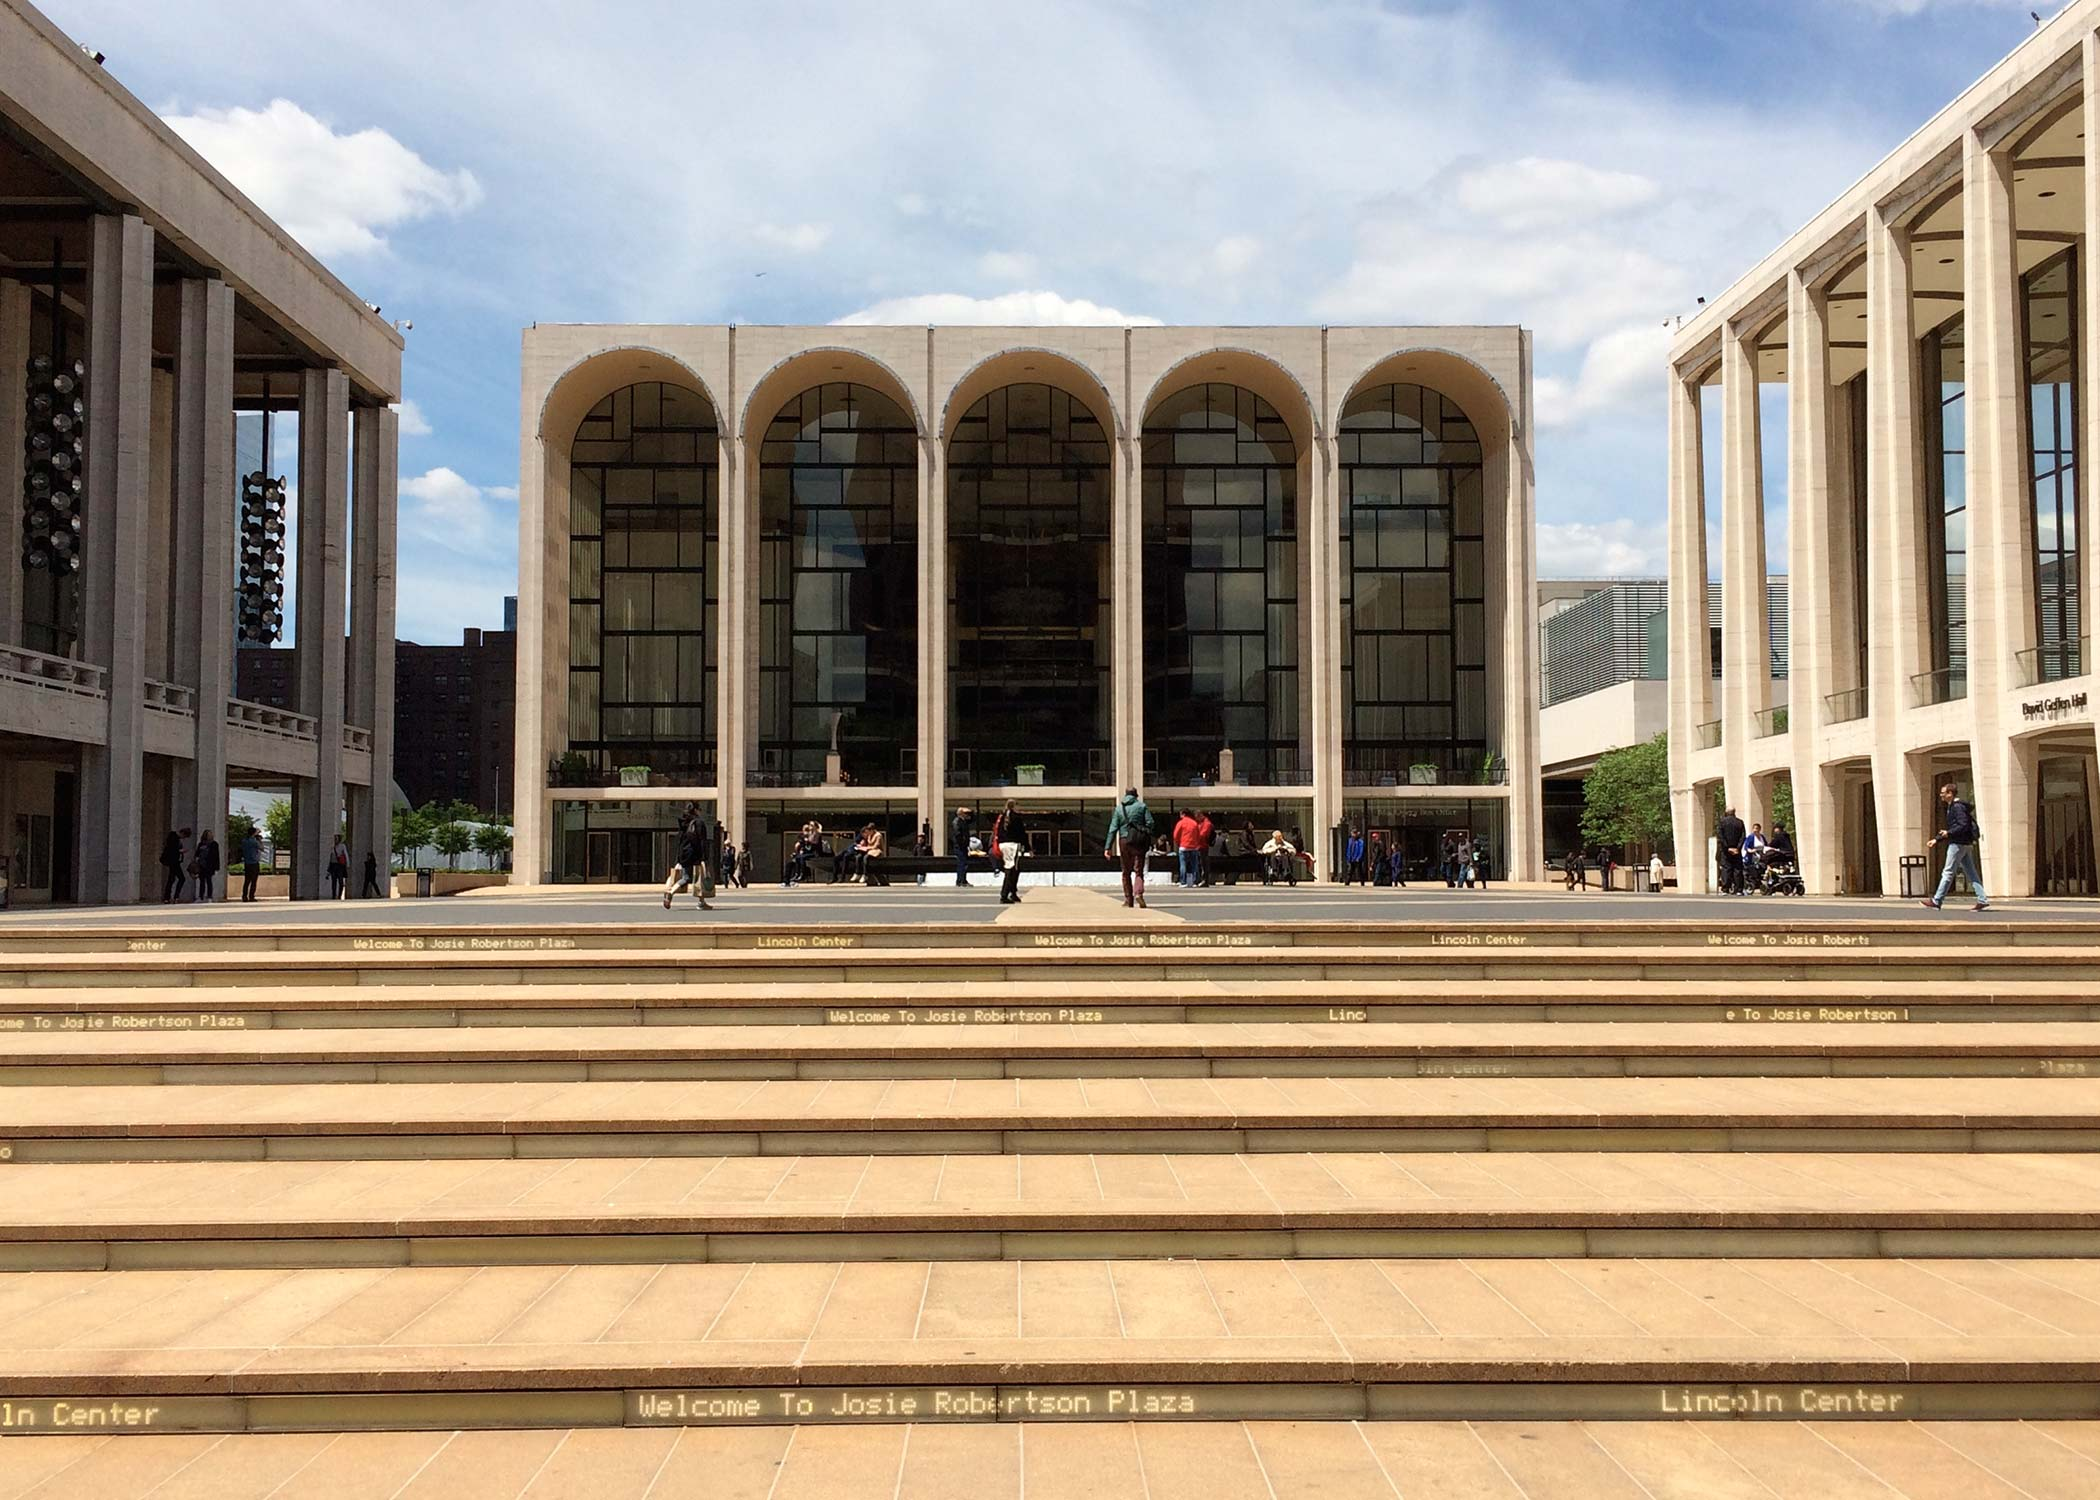 Exterior of Lincoln Center